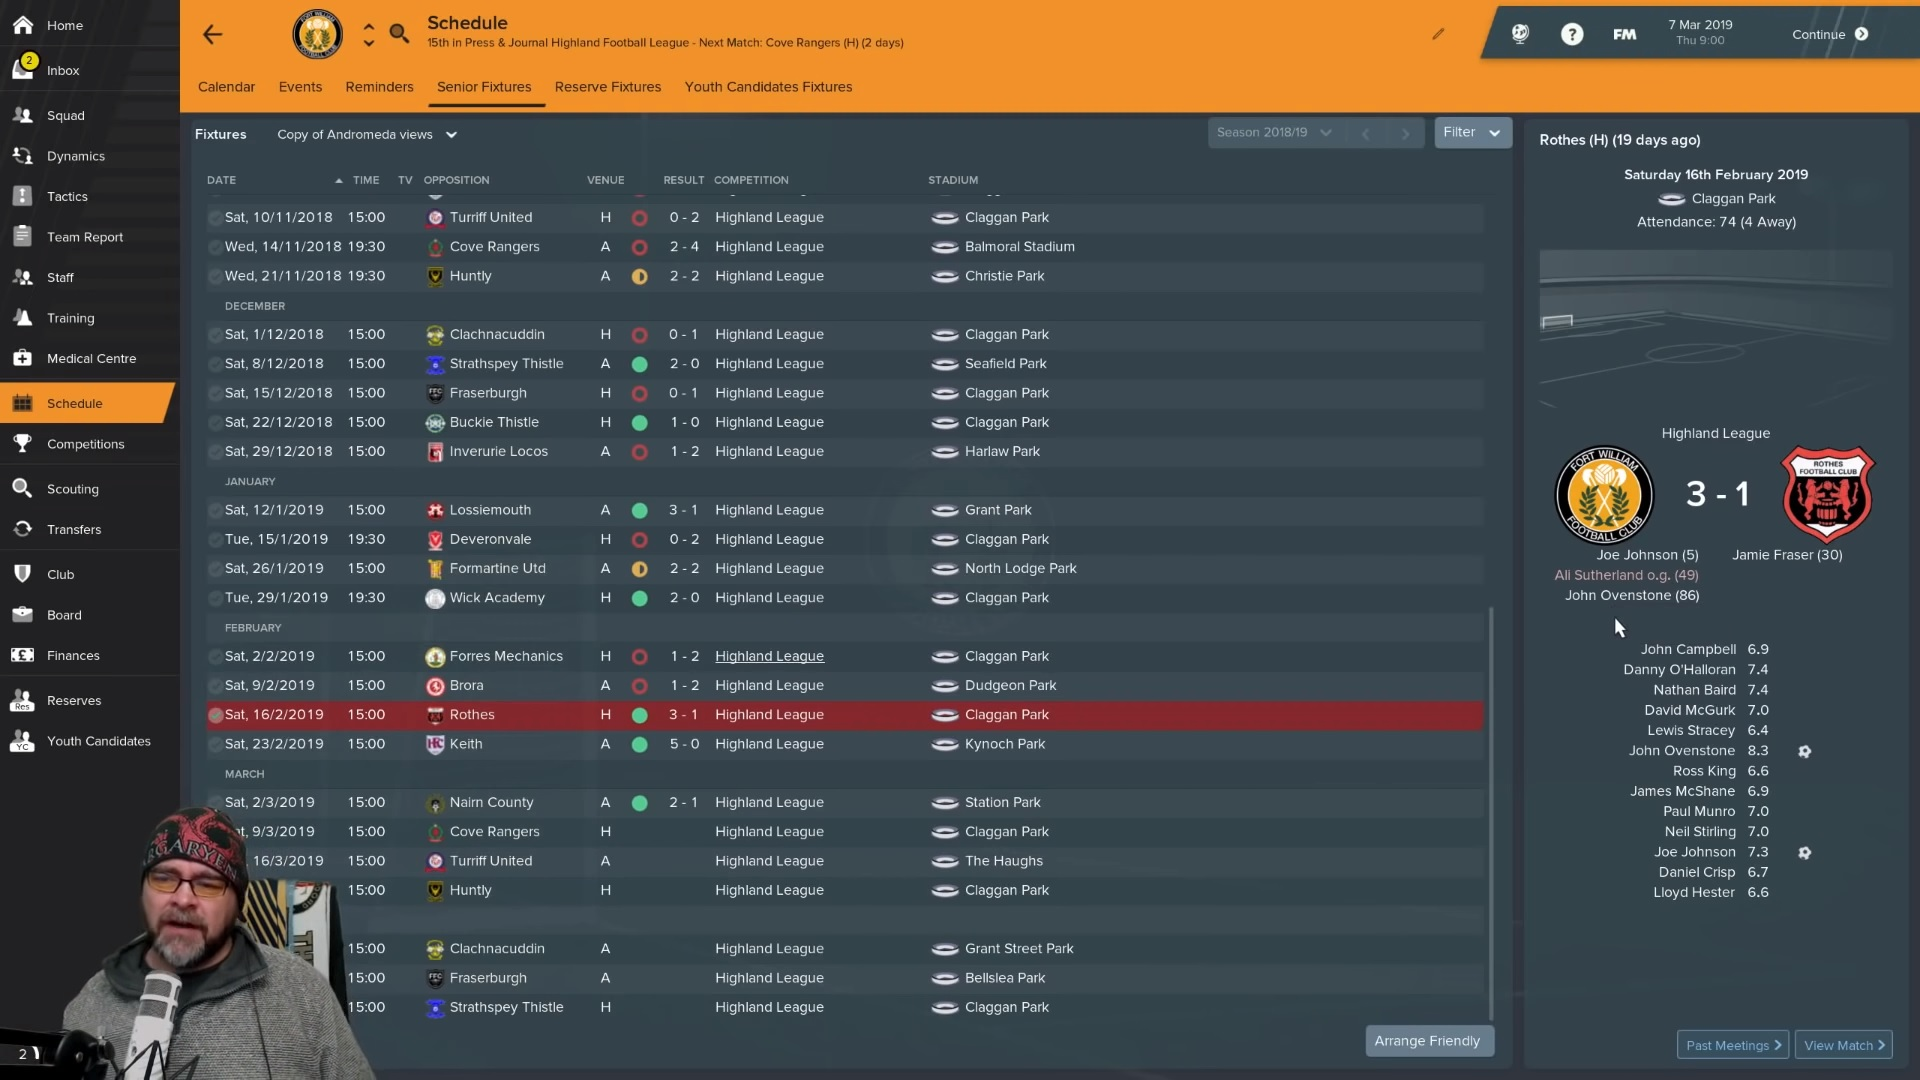 Jon Cox has taken Fort William into League 1 on popular computer game Football Manager.